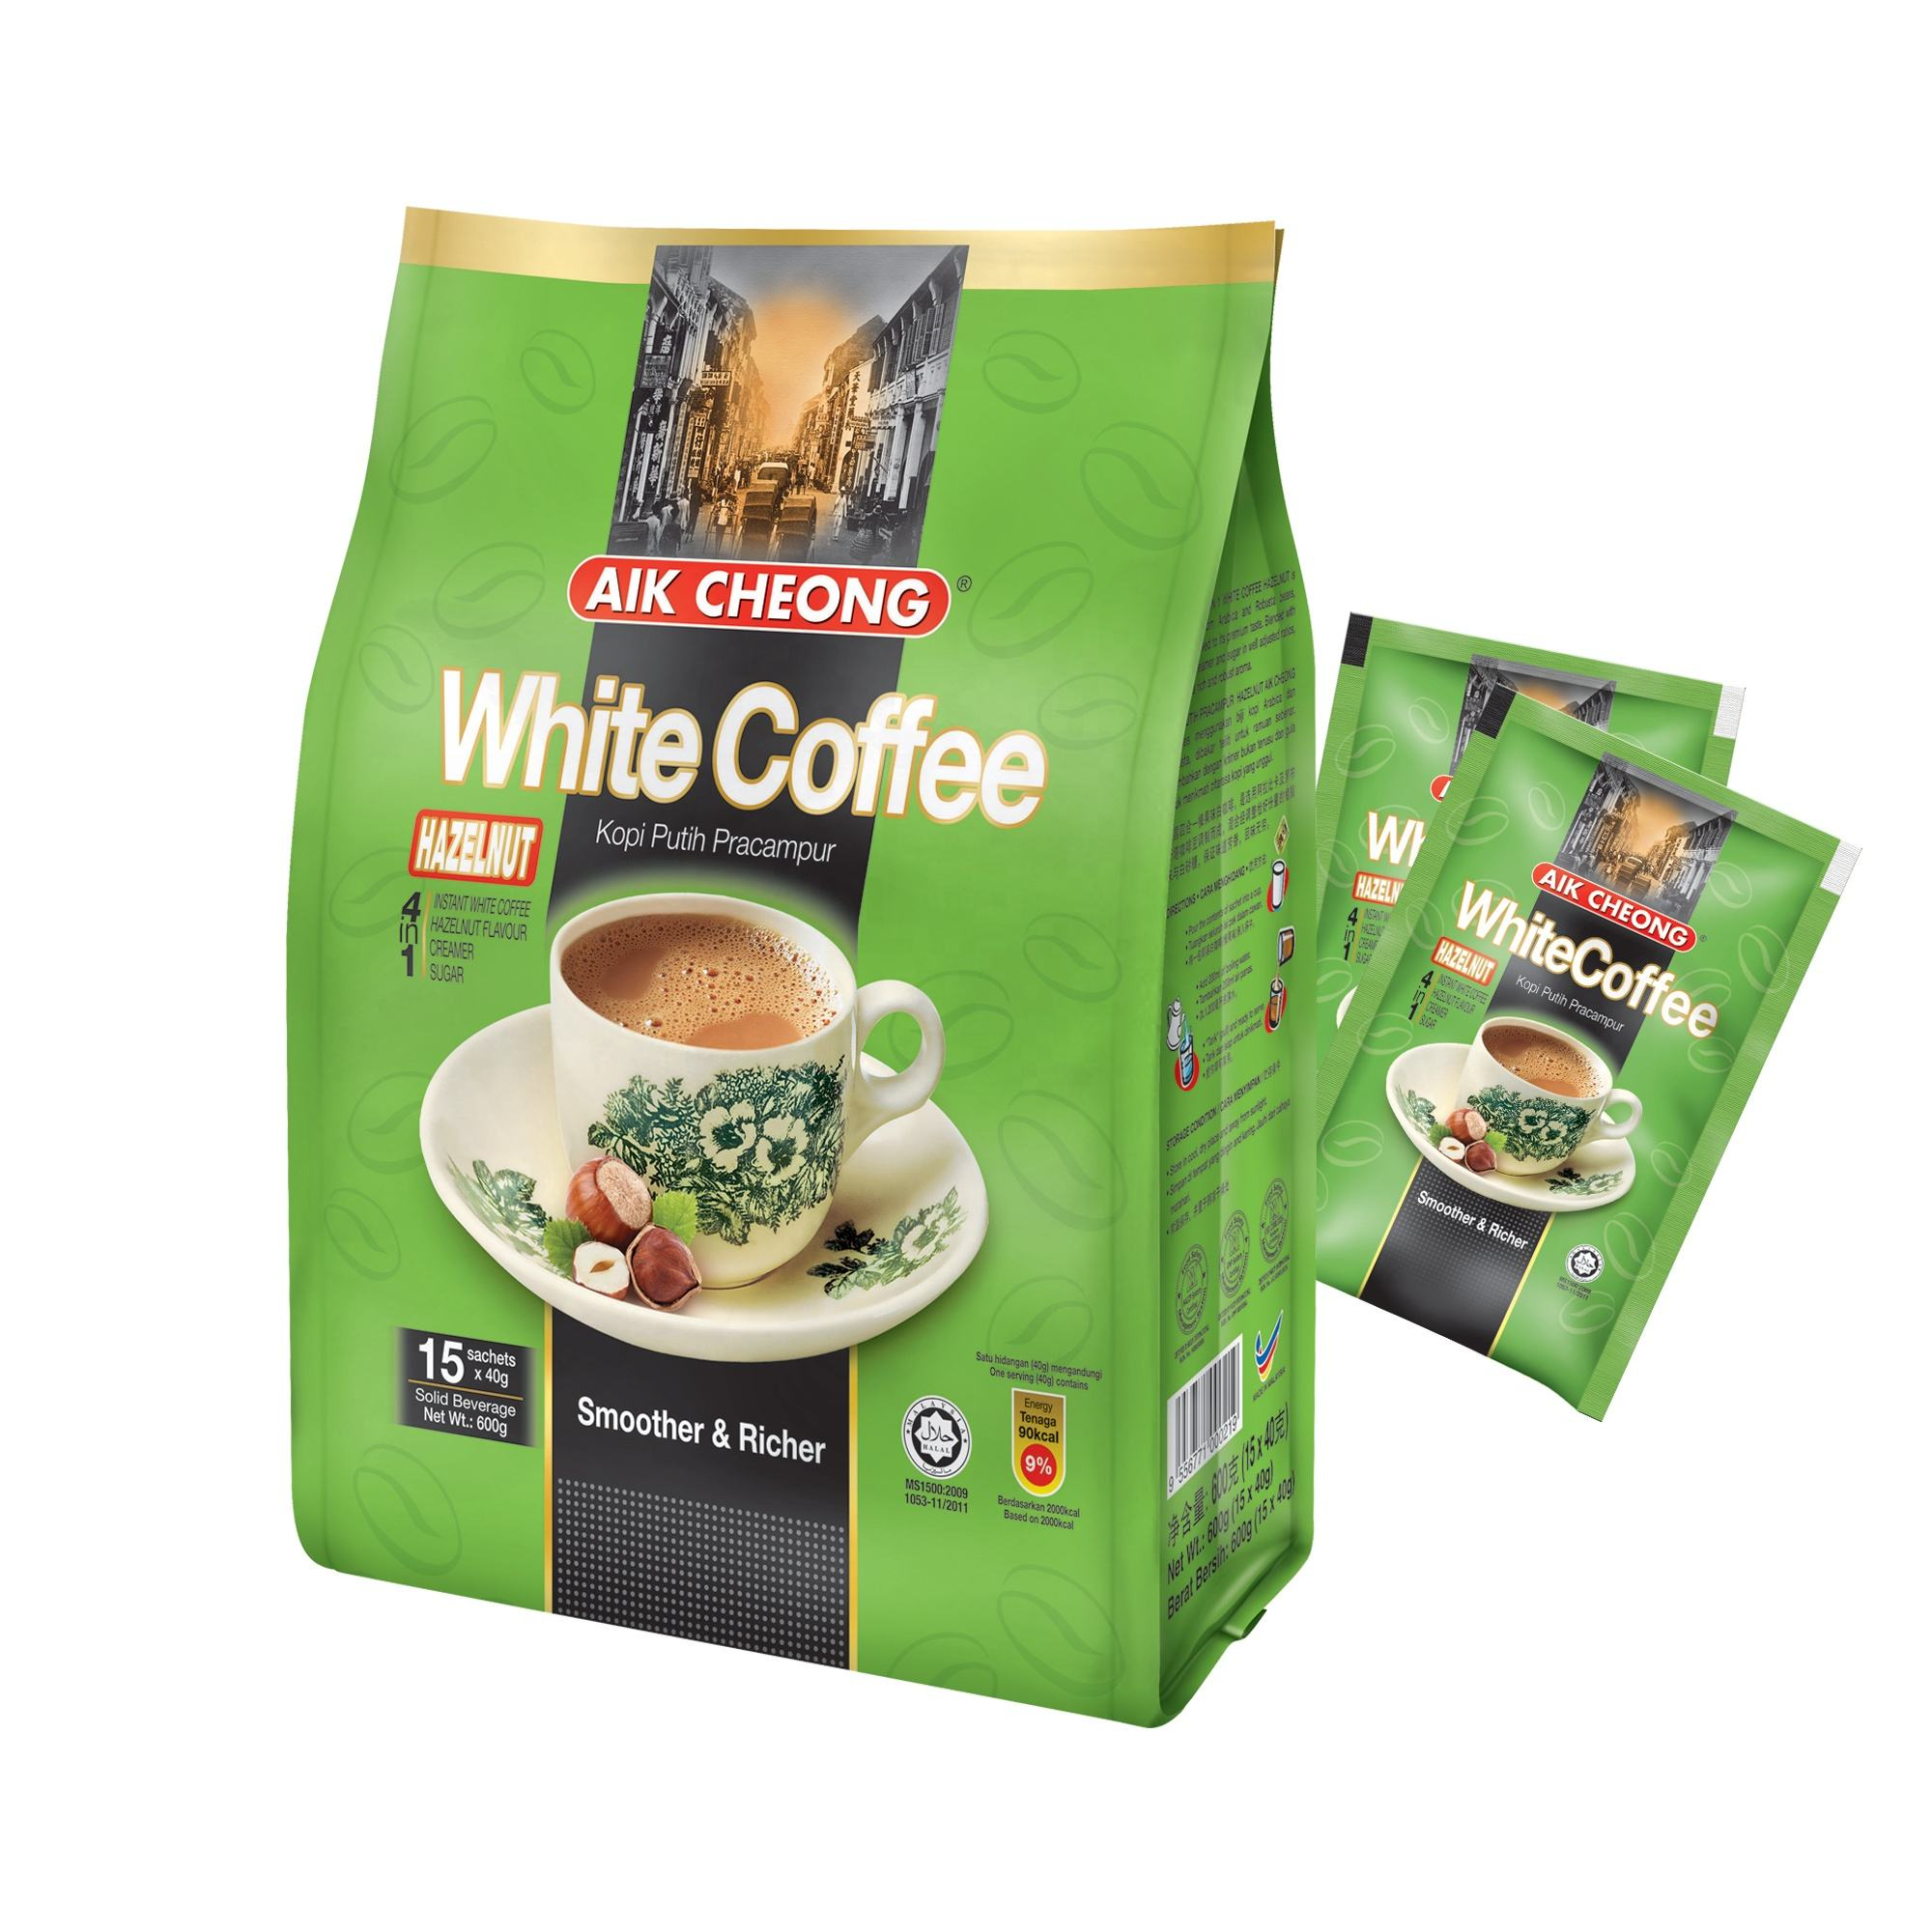 Aik Cheong (Hazelnut Flavour) Instant White Coffee 3 in 1 Malaysia (15 Sachets x 40g) Net Weight 600g